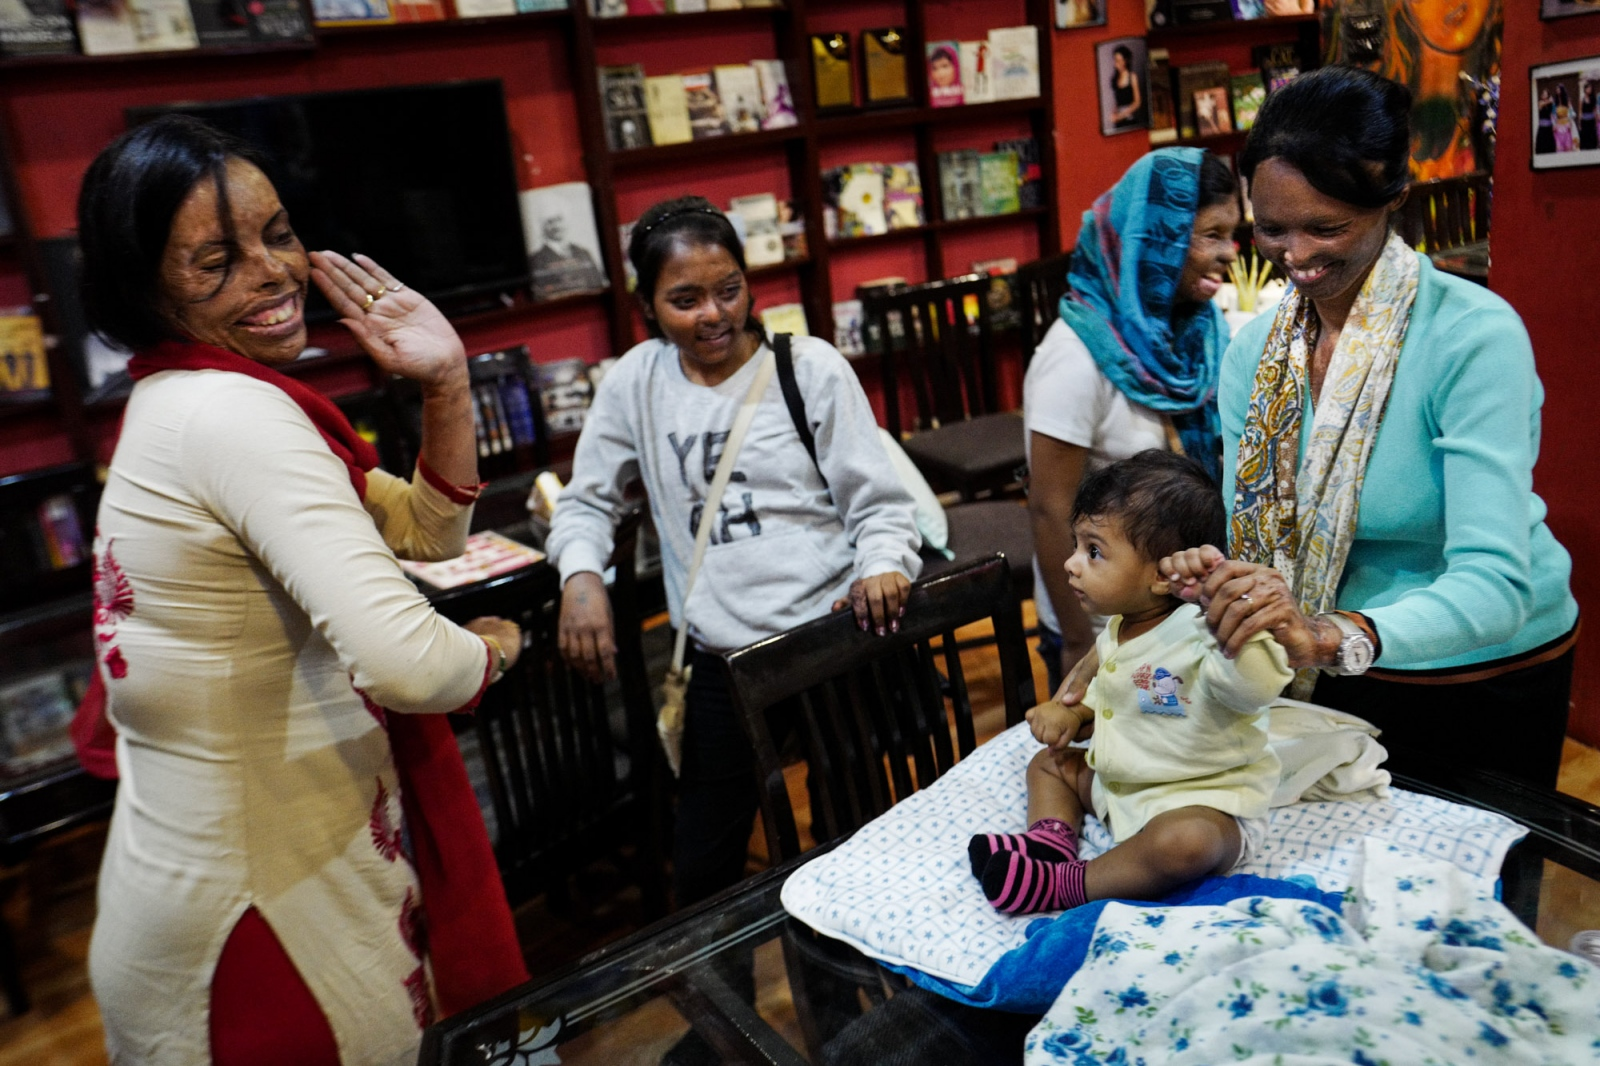 Agra, Uttar Pradesh, India. 29 October 2015. Soniya, on the left, plays with Pihu, the baby of Laxsmi, on the right, at the Sheroes Hangout Cafè. On the background two more activists: Dolly and Rupa, both Acid Attack Fighters. The women of the Sheroes Hangout decided to work at the cafè to raise awareness about this issue, but also to help other attacked women to start a new life.